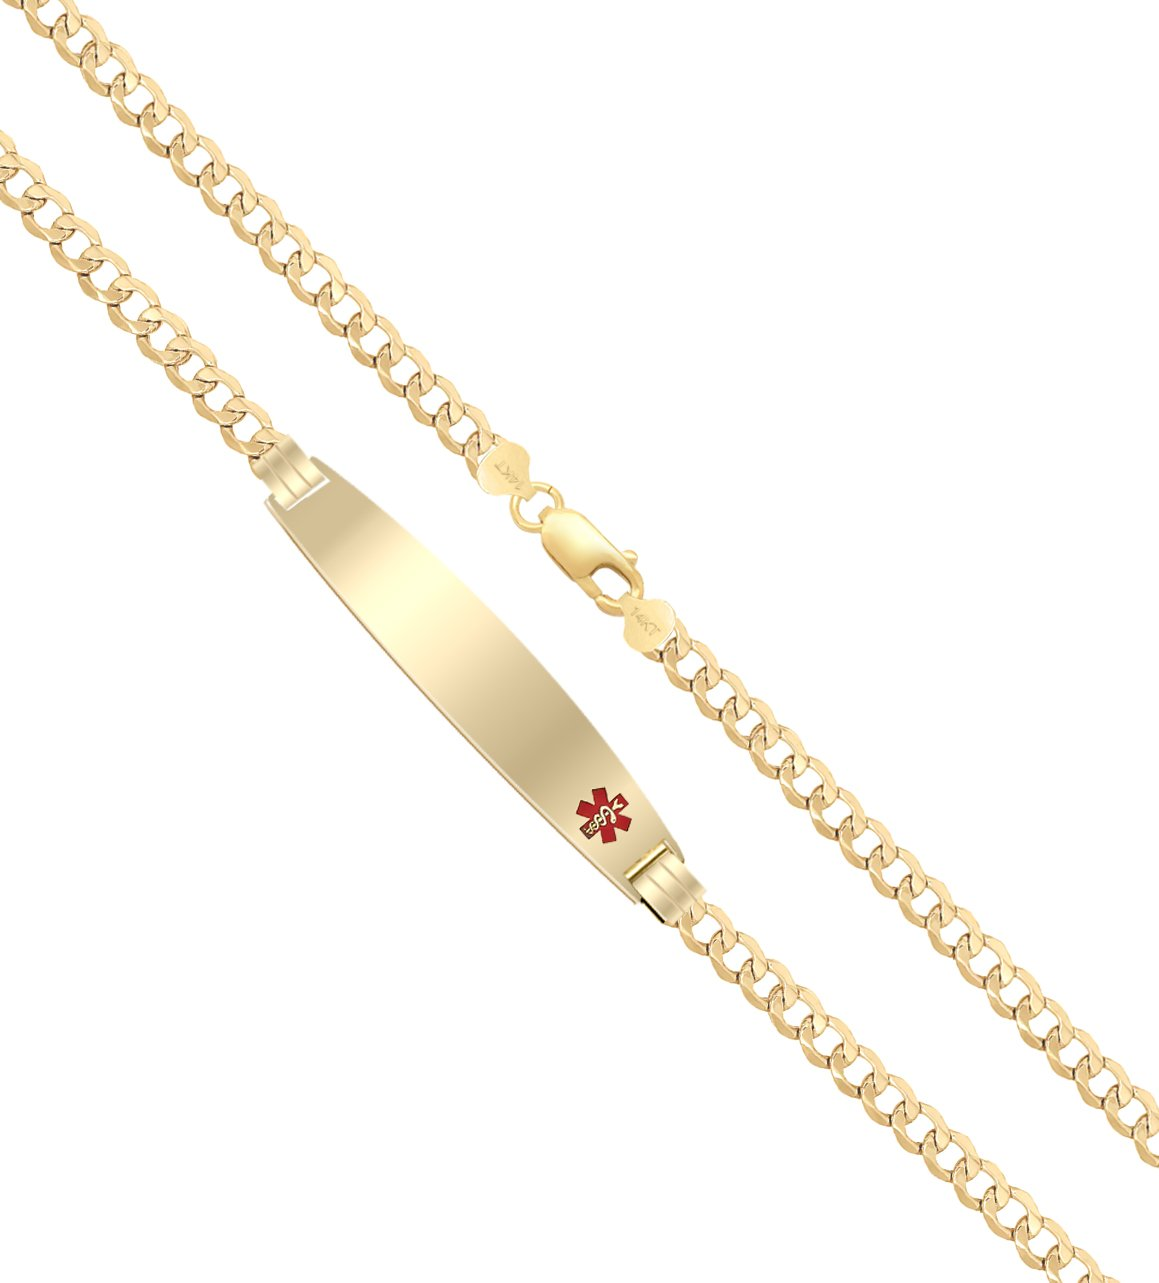 US Jewels And Gems Customizable Ladies 14k Yellow Gold 4mm Curb Medical Alert ID Bracelet with Free Engraving, 6.5in by US Jewels And Gems